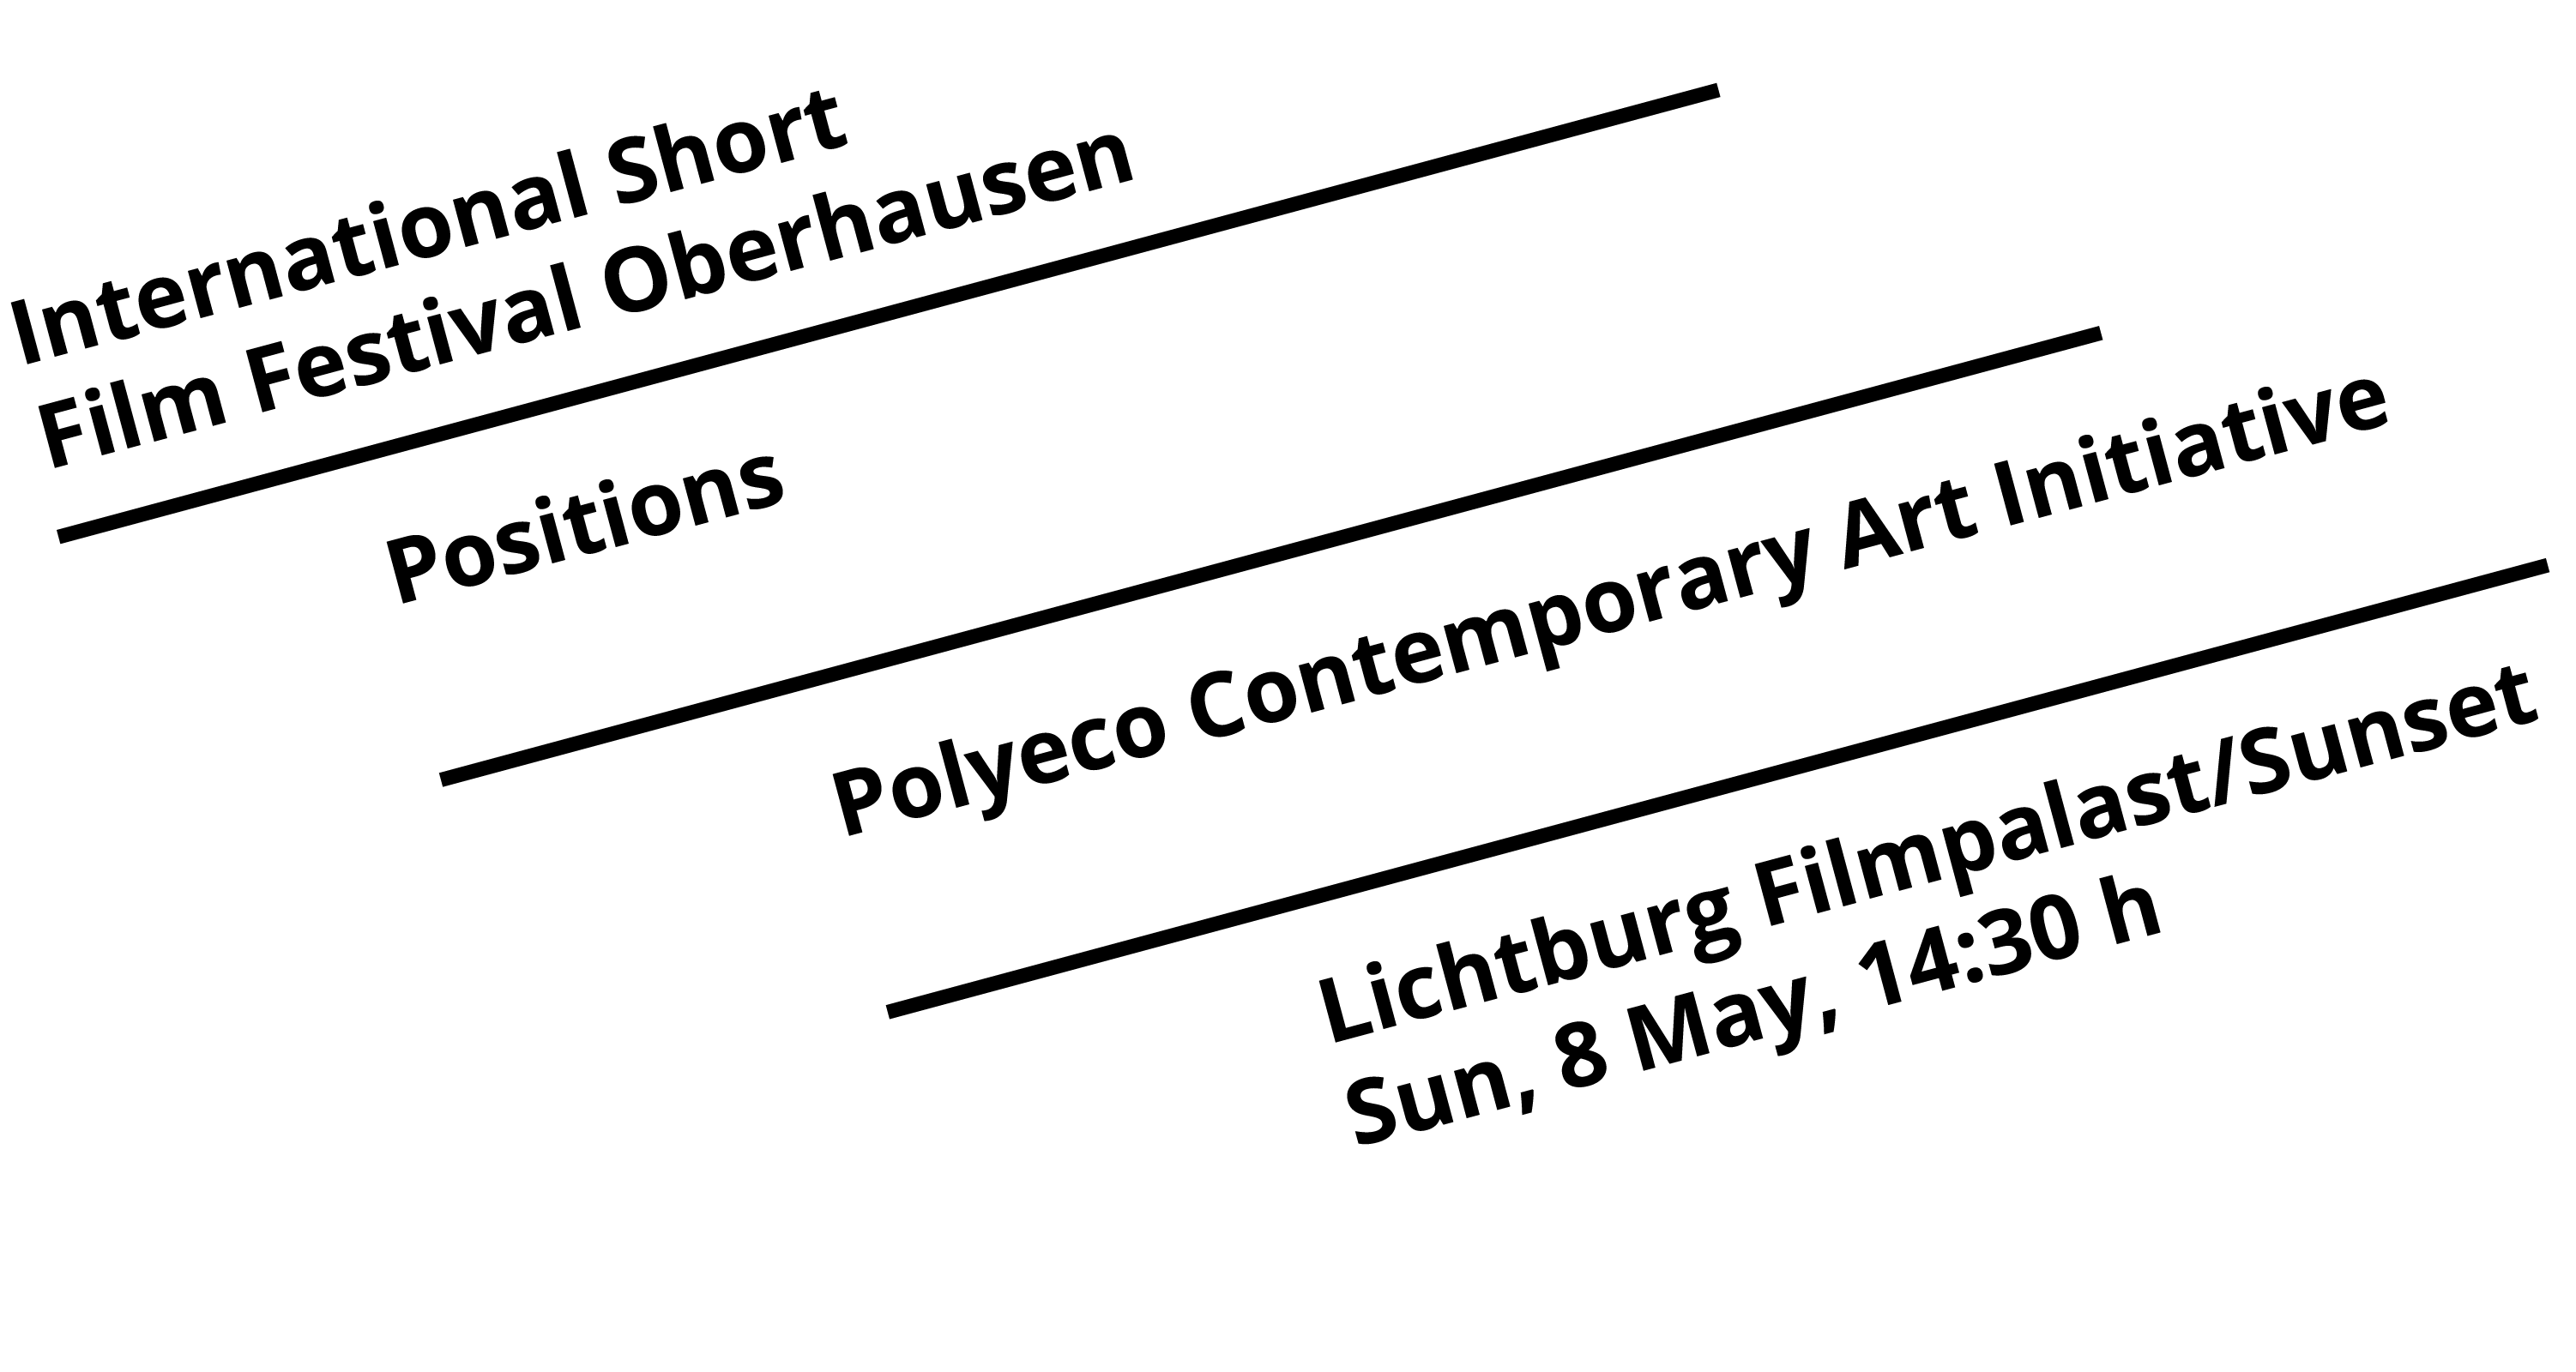 International Short Film Festival Oberhausen — Positions: Polyeco Contemporary Art Initiative